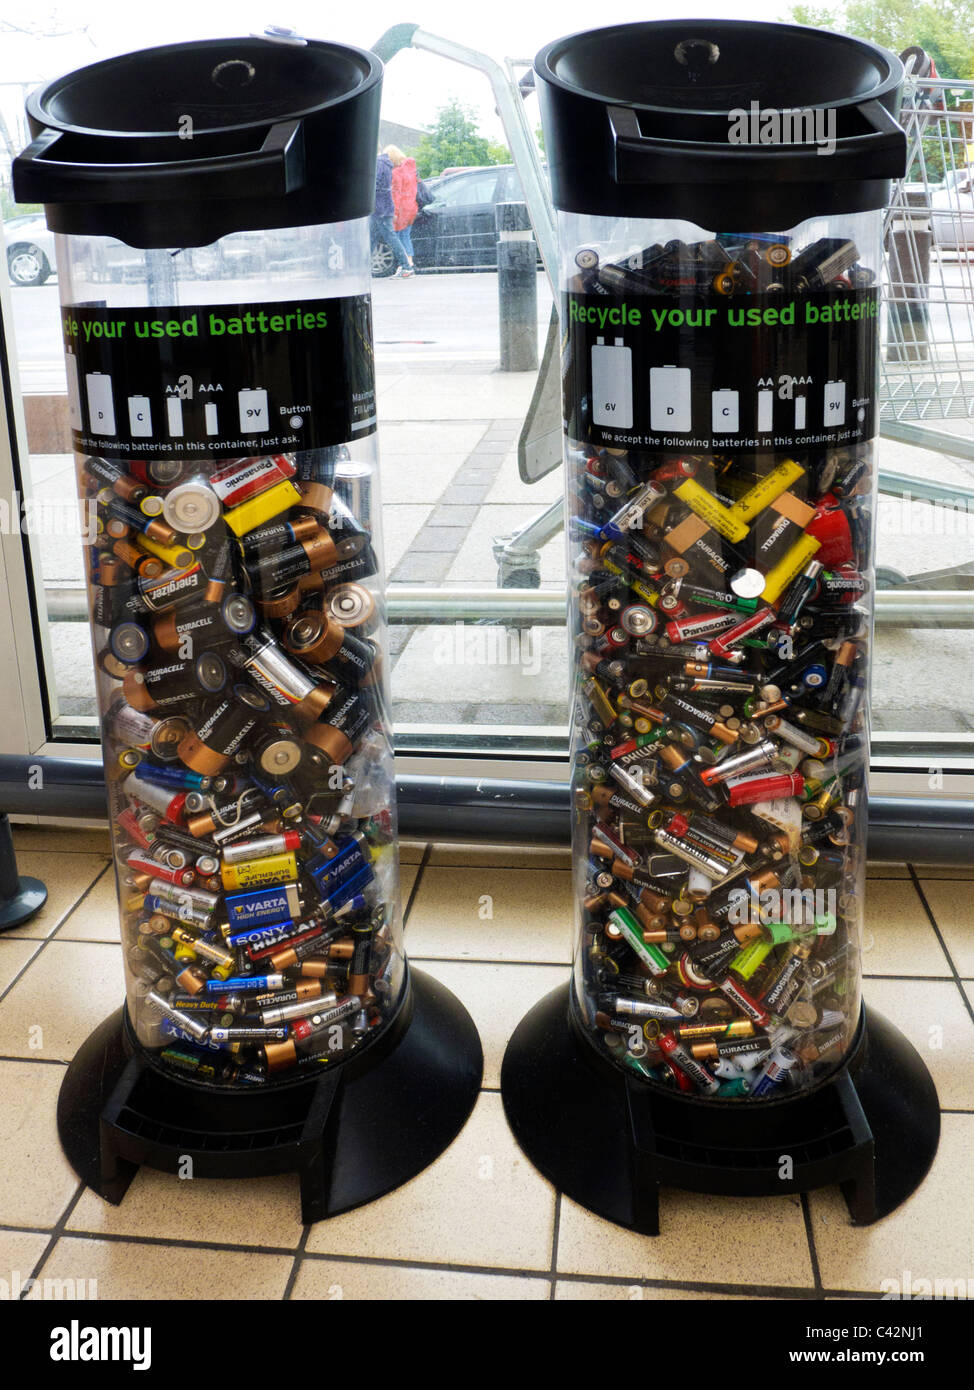 Battery Recycling Container In Public Shopping Area Stock